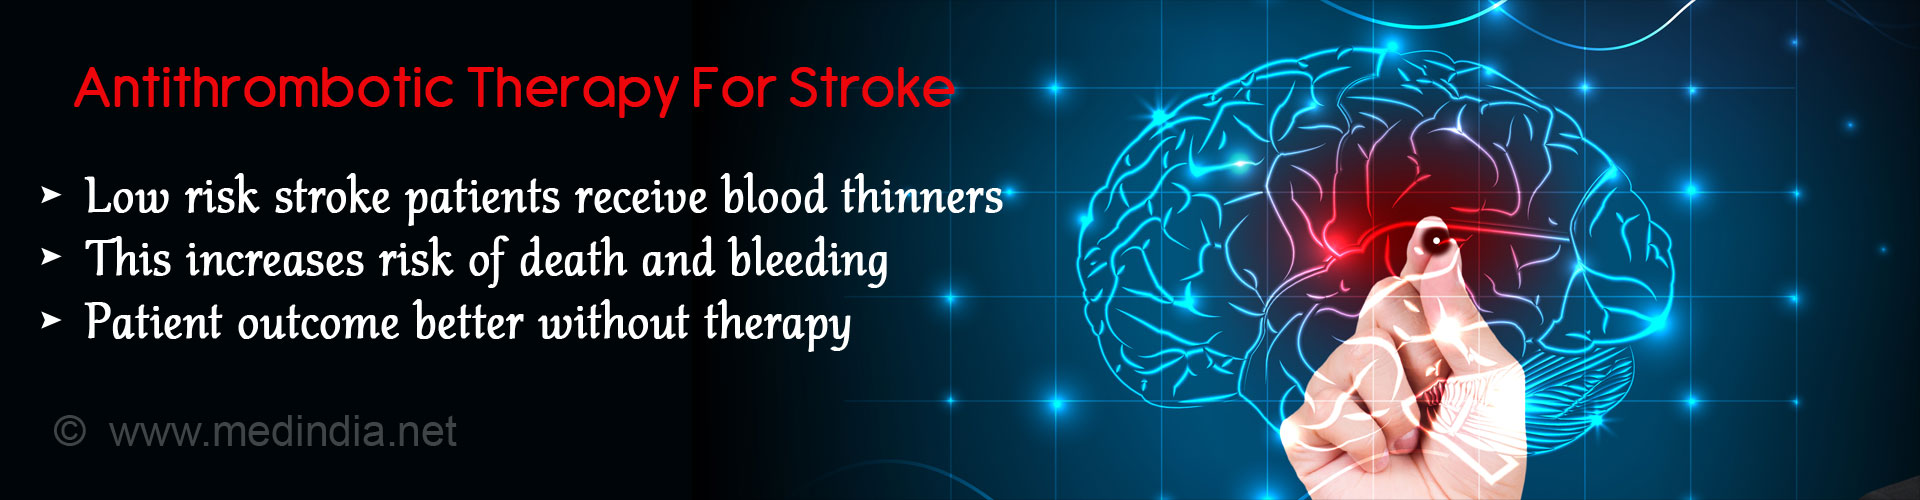 Blood Thinners Do Not Lower Risk of Stroke Among Low Risk Patients